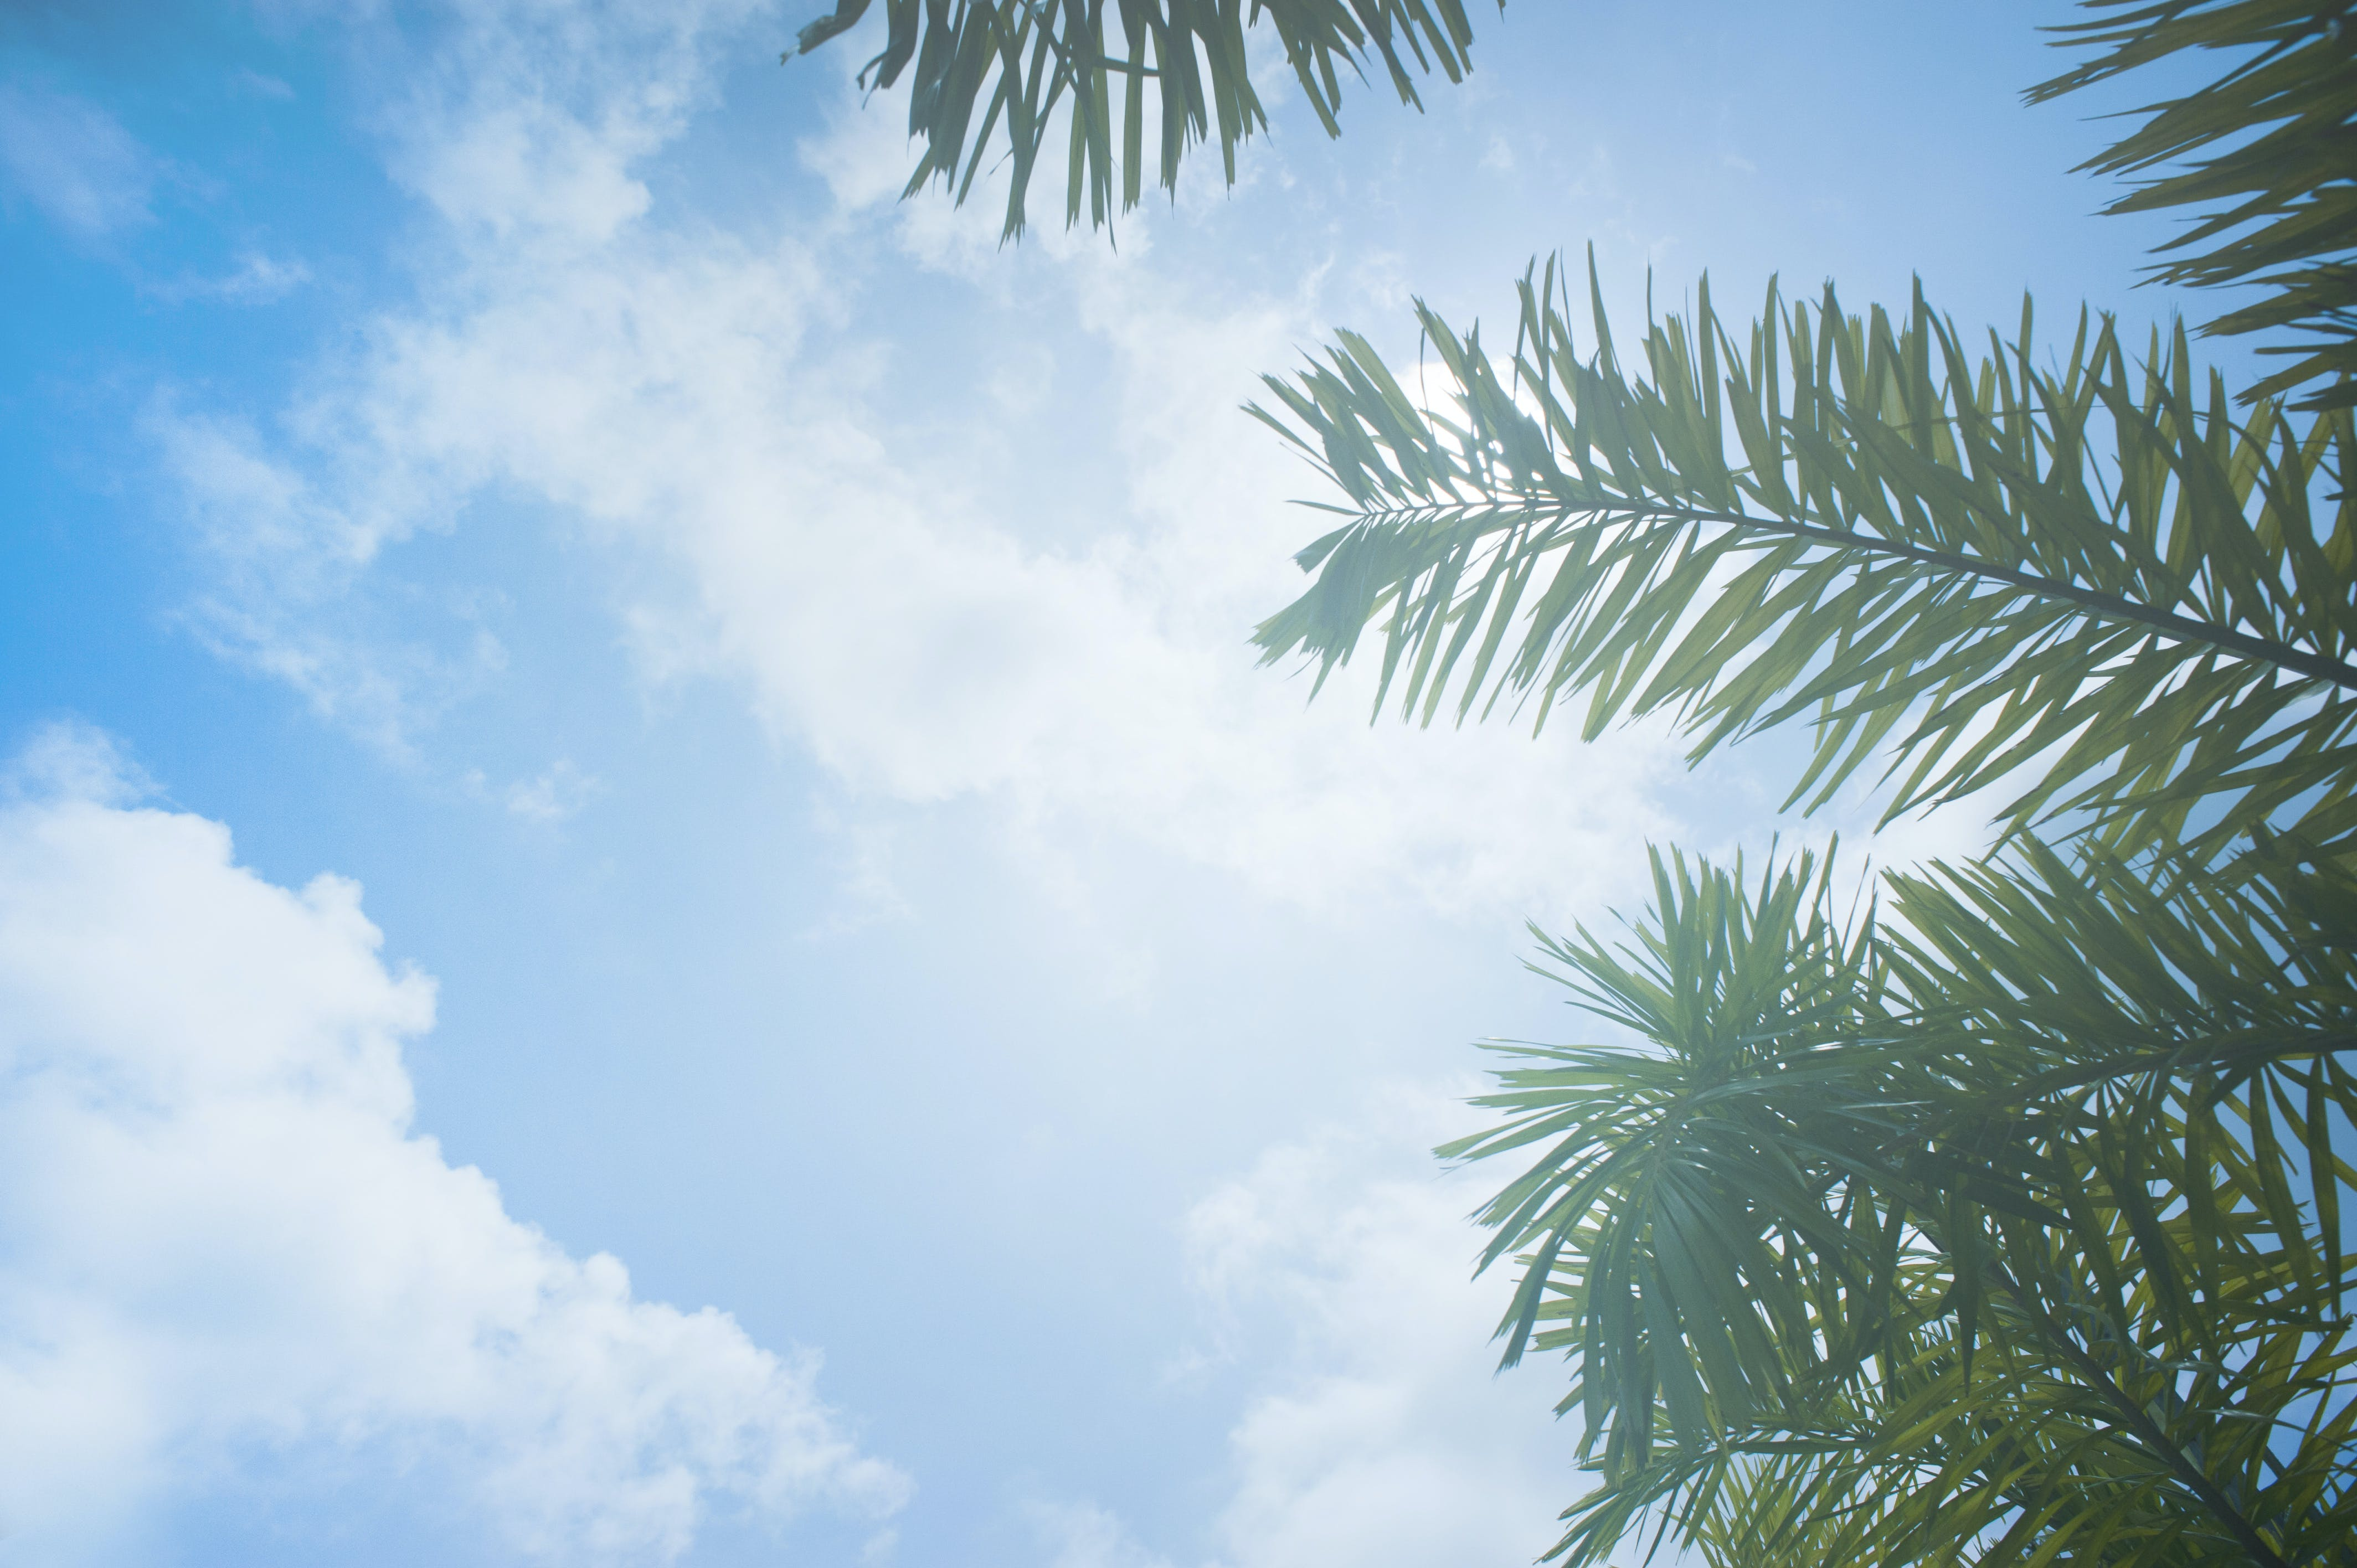 Low Angle Photo of Palm Leaves